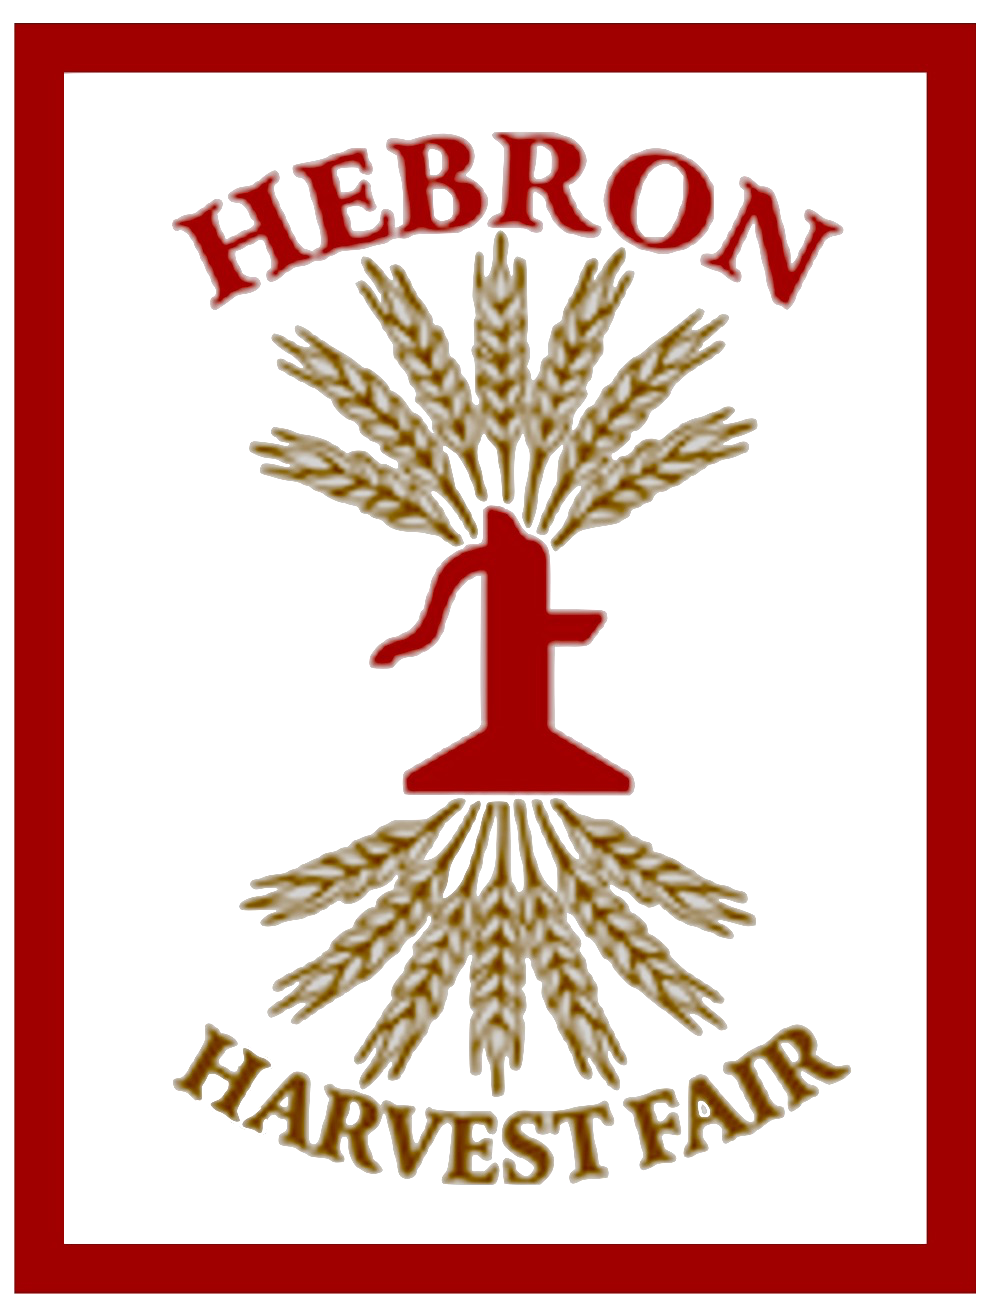 Hebron Harvest Fair